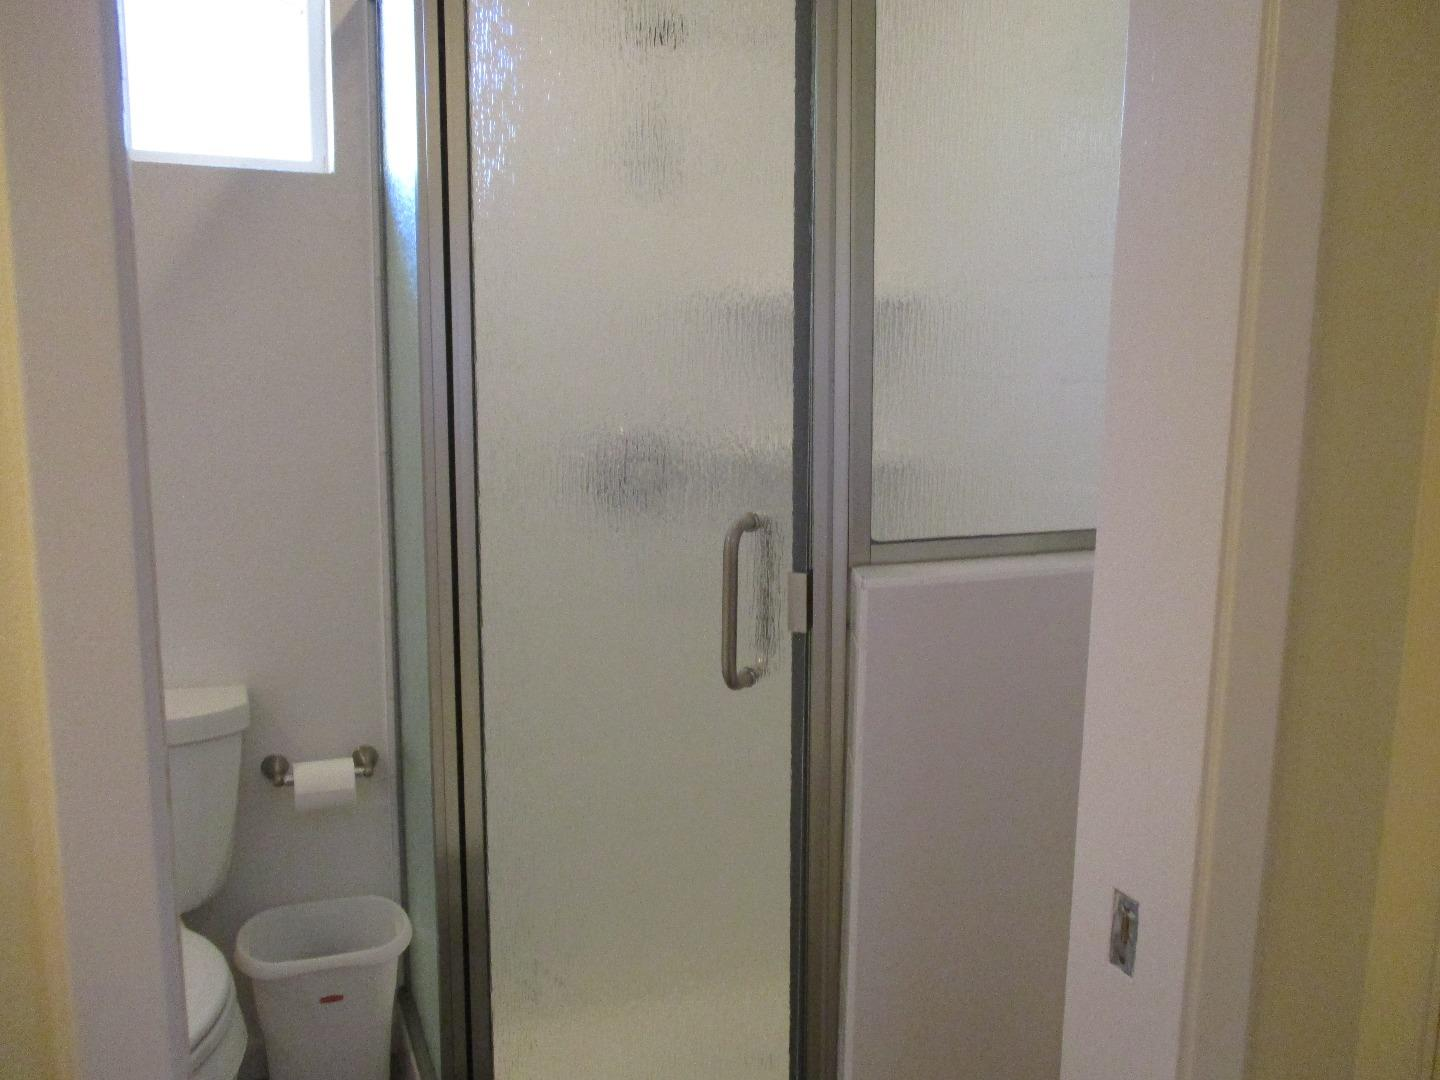 Additional photo for property listing at 7510 Westwood Drive 7510 Westwood Drive Gilroy, カリフォルニア 95020 アメリカ合衆国